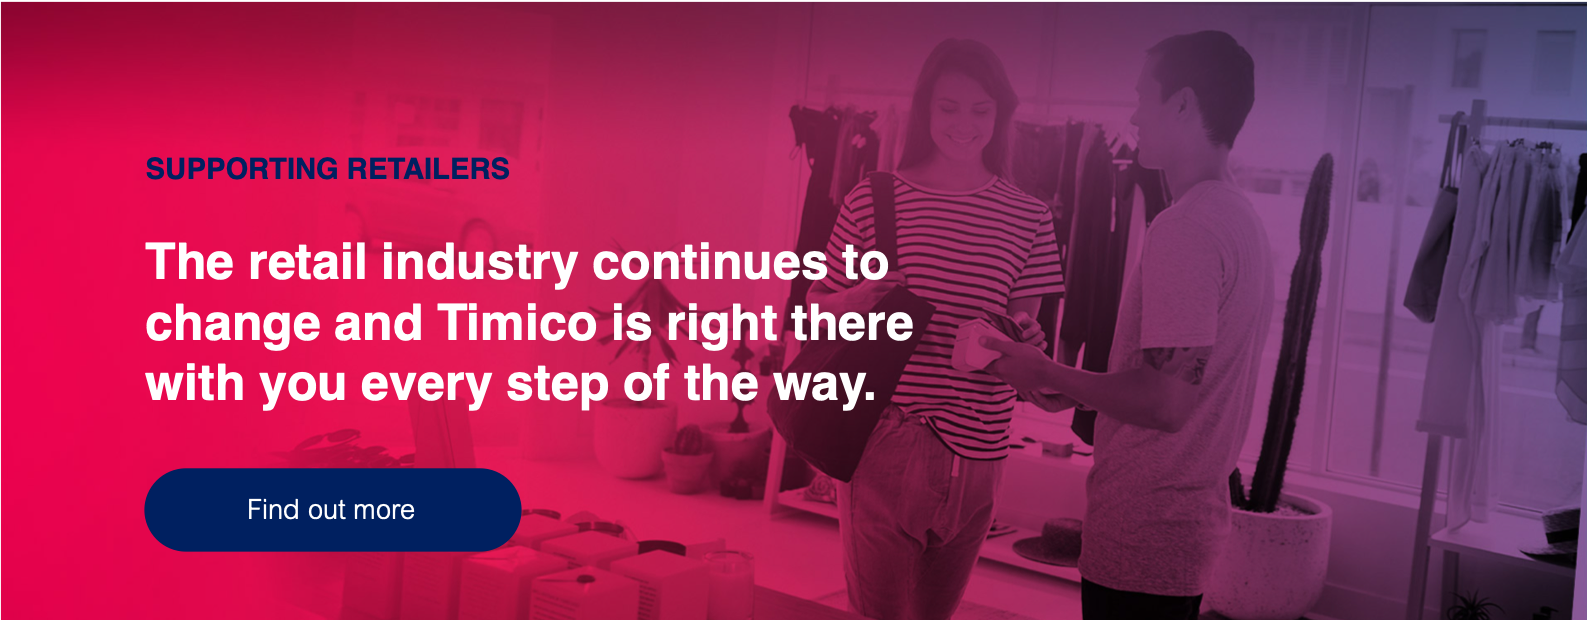 Timico for Retailers